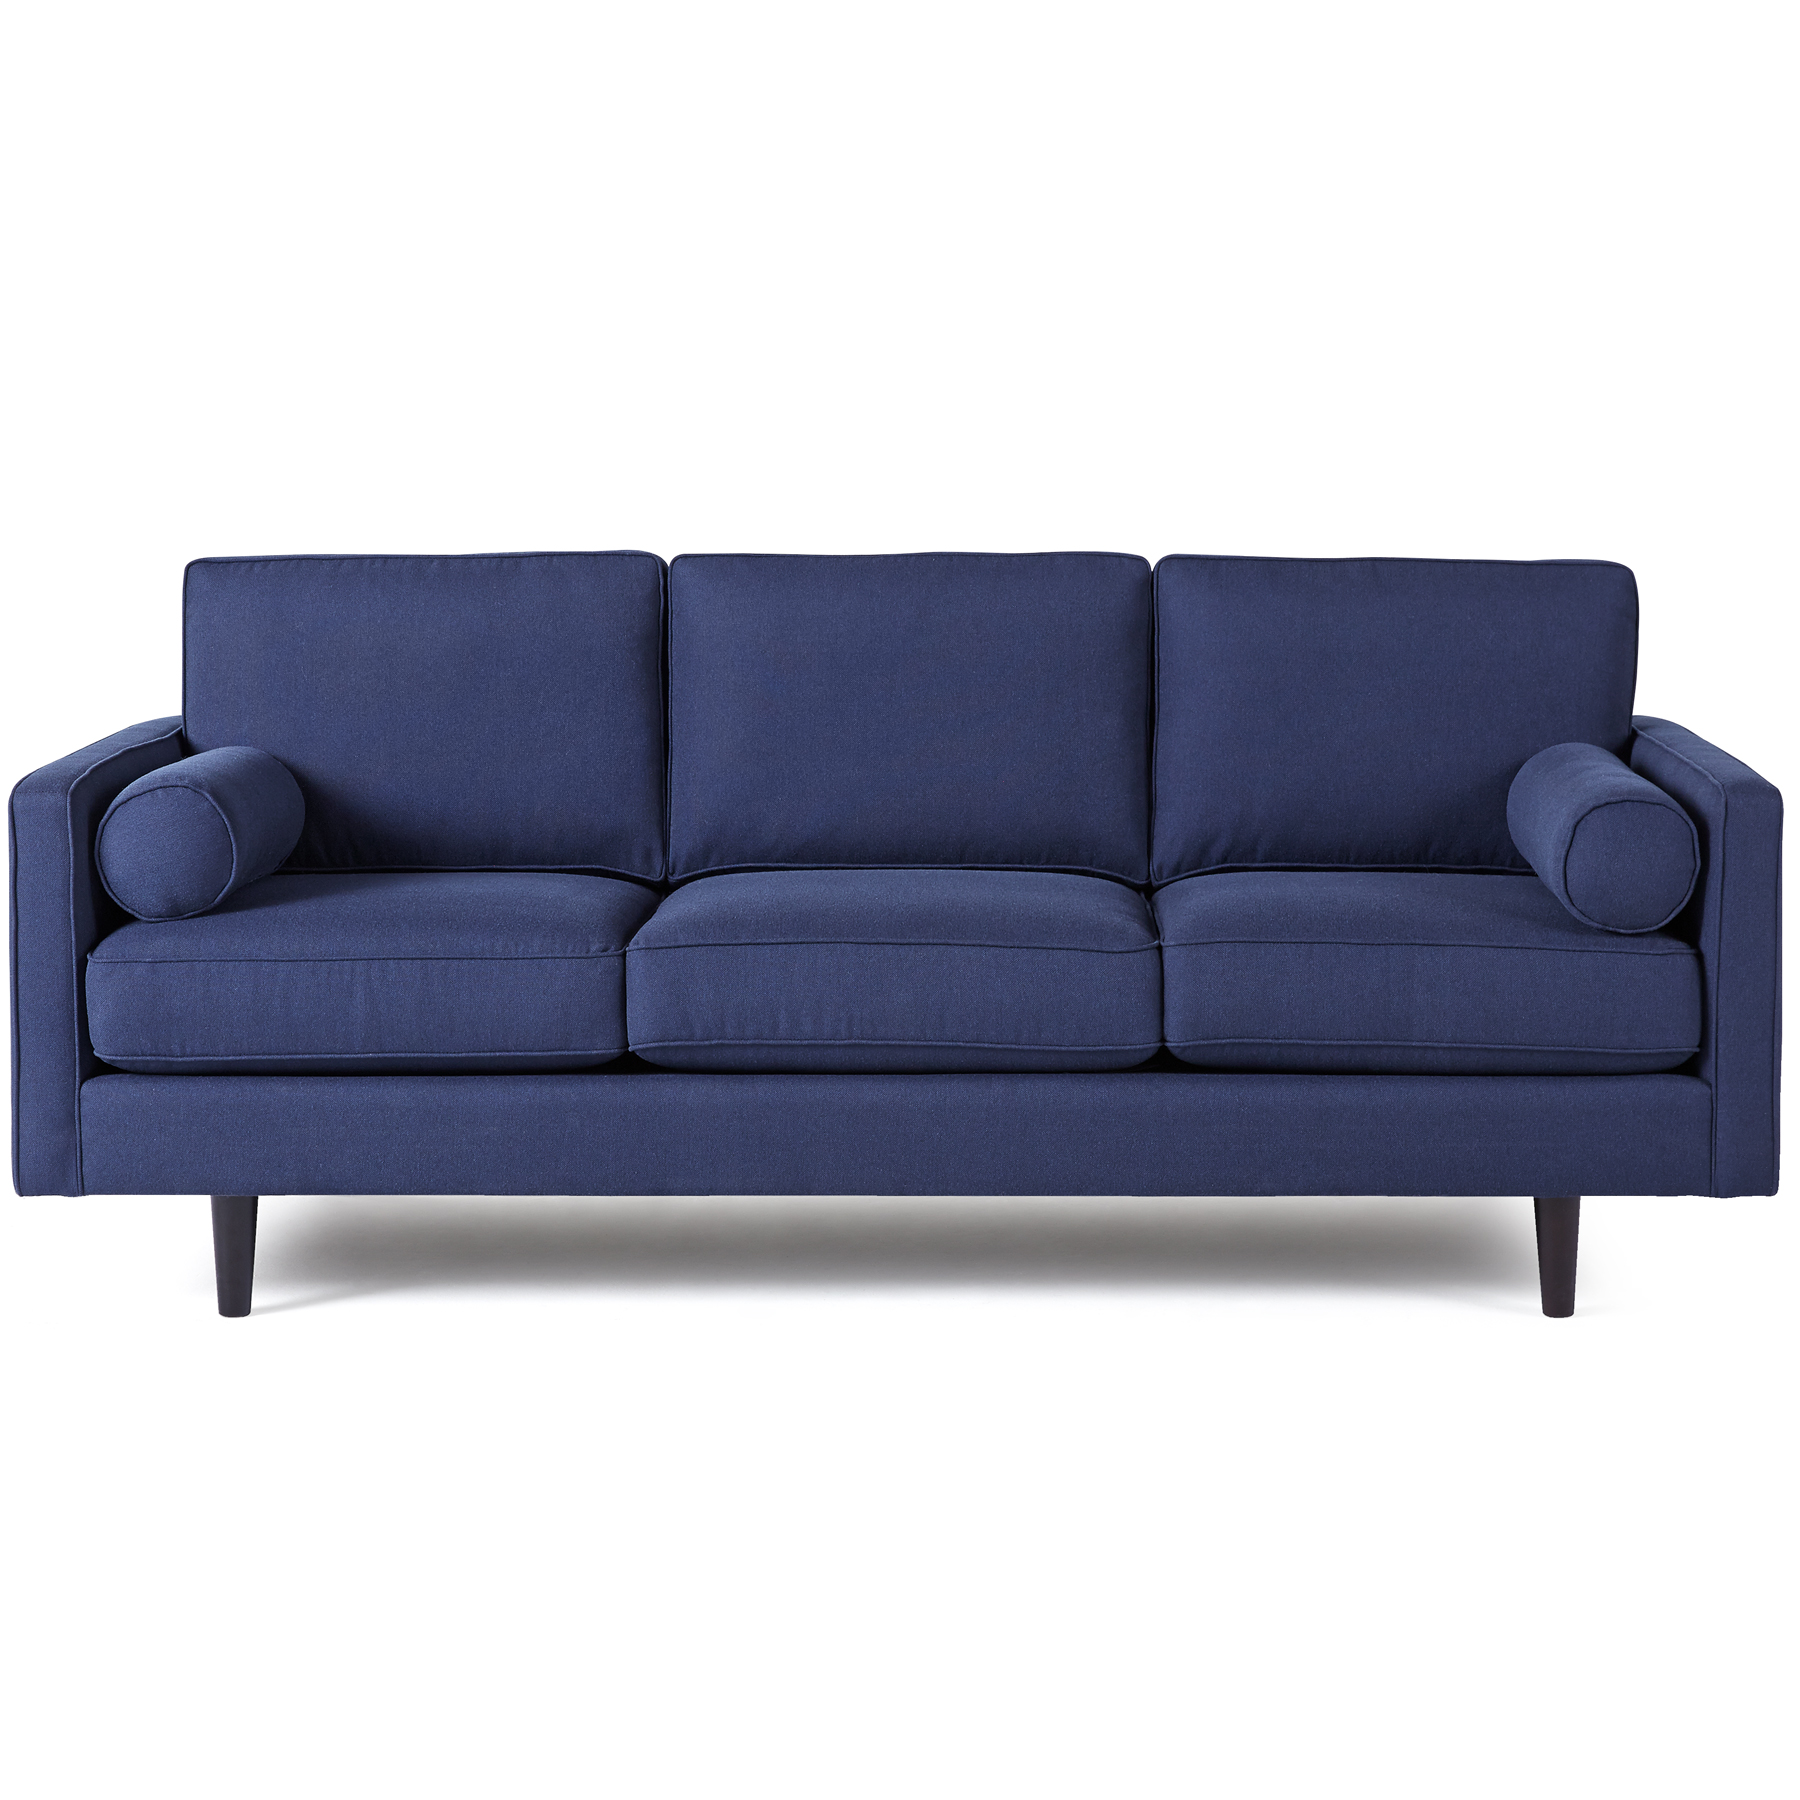 Tremendous Brandon 80 Sofa 150 Fabrics Sofas And Sectionals Alphanode Cool Chair Designs And Ideas Alphanodeonline